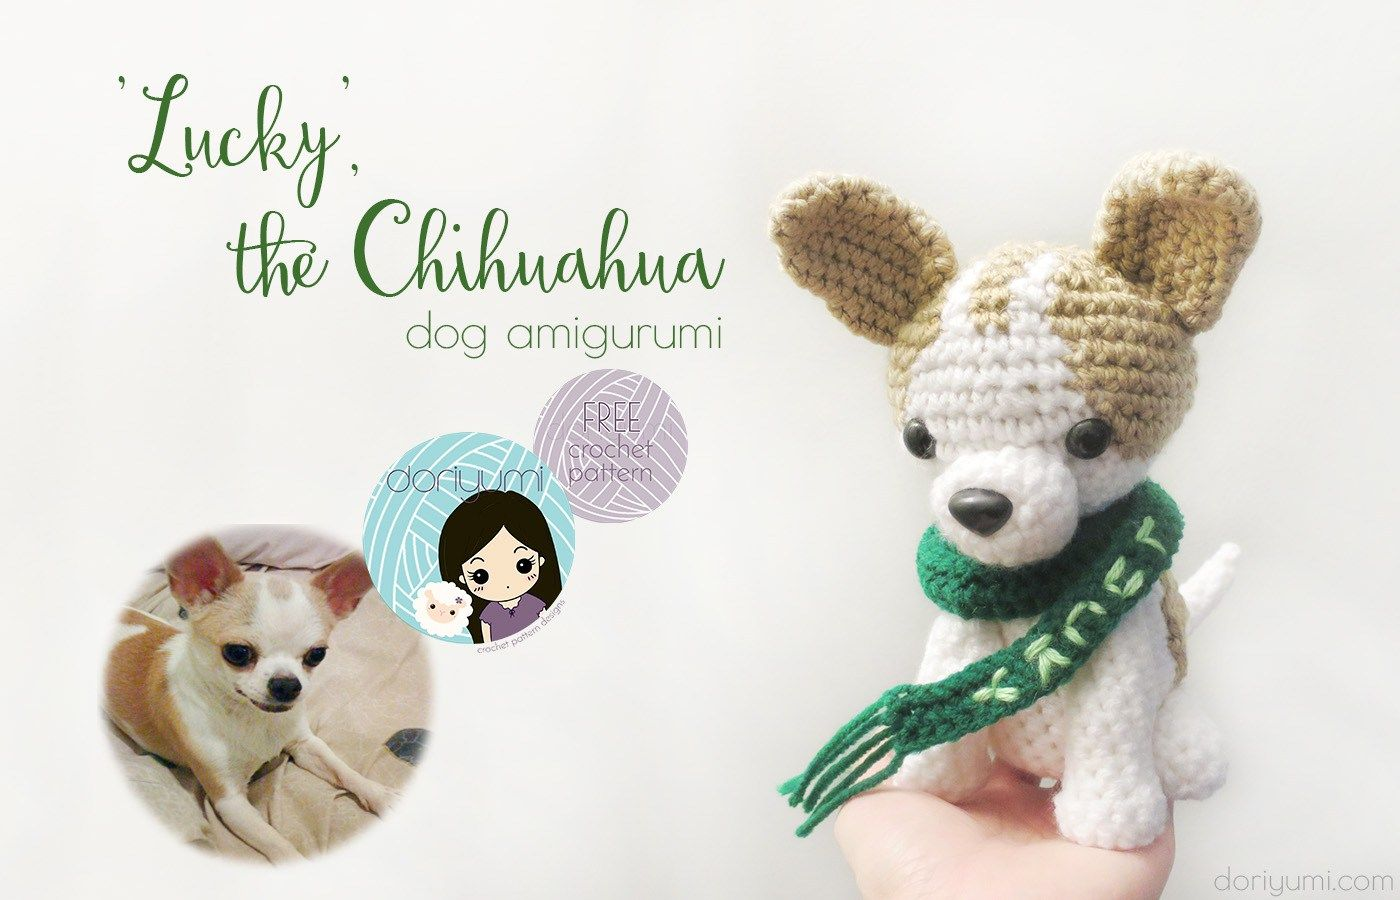 Lucky the Chihuahua - free crochet pattern by DORIYUMI